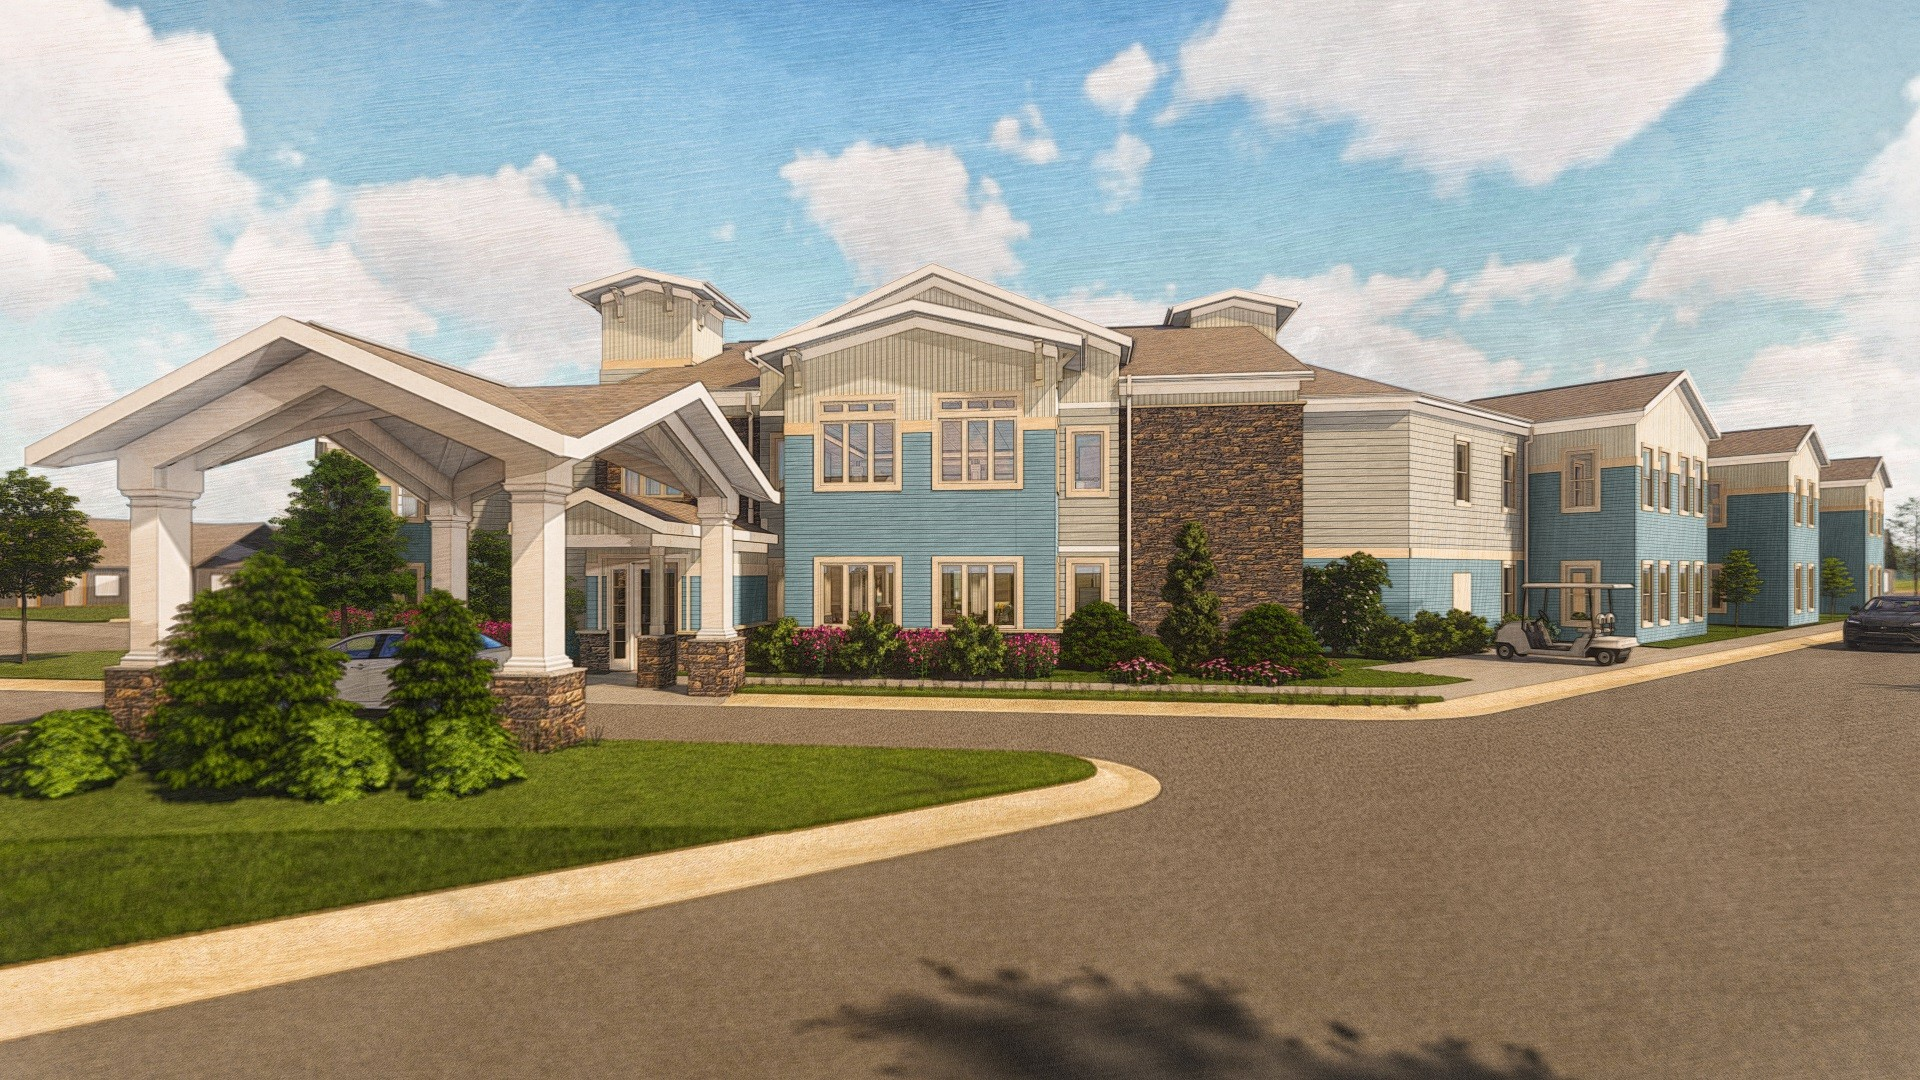 The Oakwood at Otterbein, set to open next spring at Otterbein Pemberville, will feature 64 assisted living suites, each with a kitchenette, bathroom and other amenities. (Submitted photo)